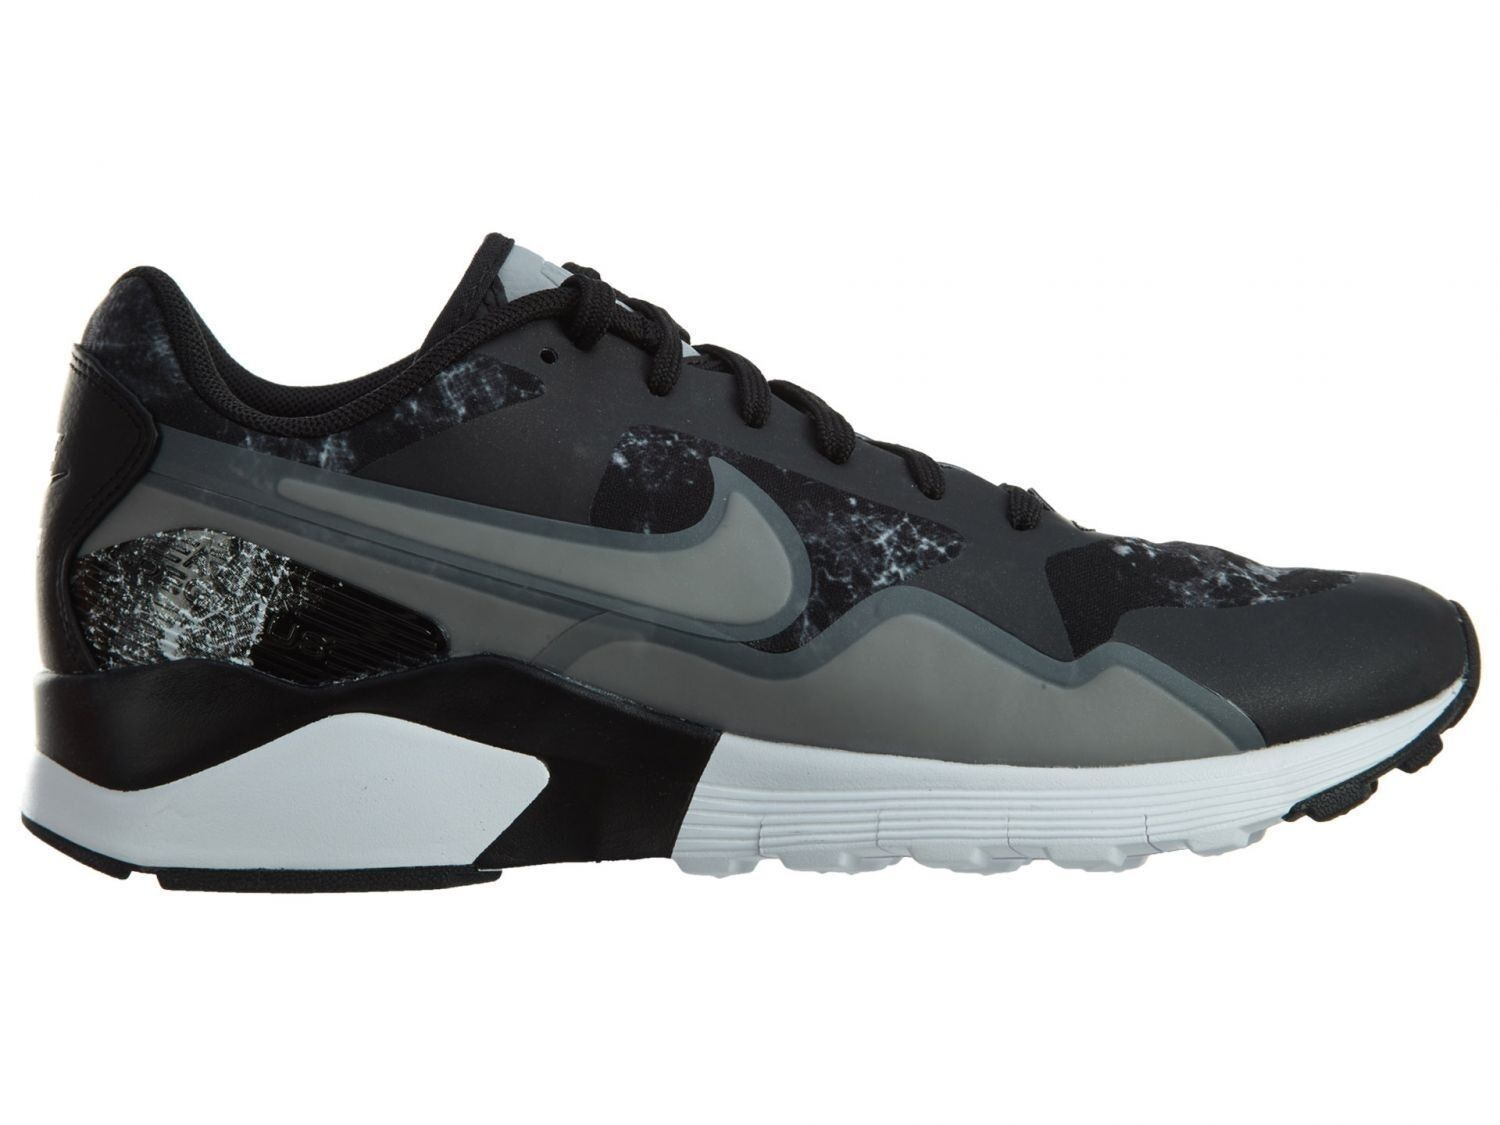 New Nike Air Pegasus Trainers chaussures - Baskets Femme Ladies Girls - chaussures noir 96a26d